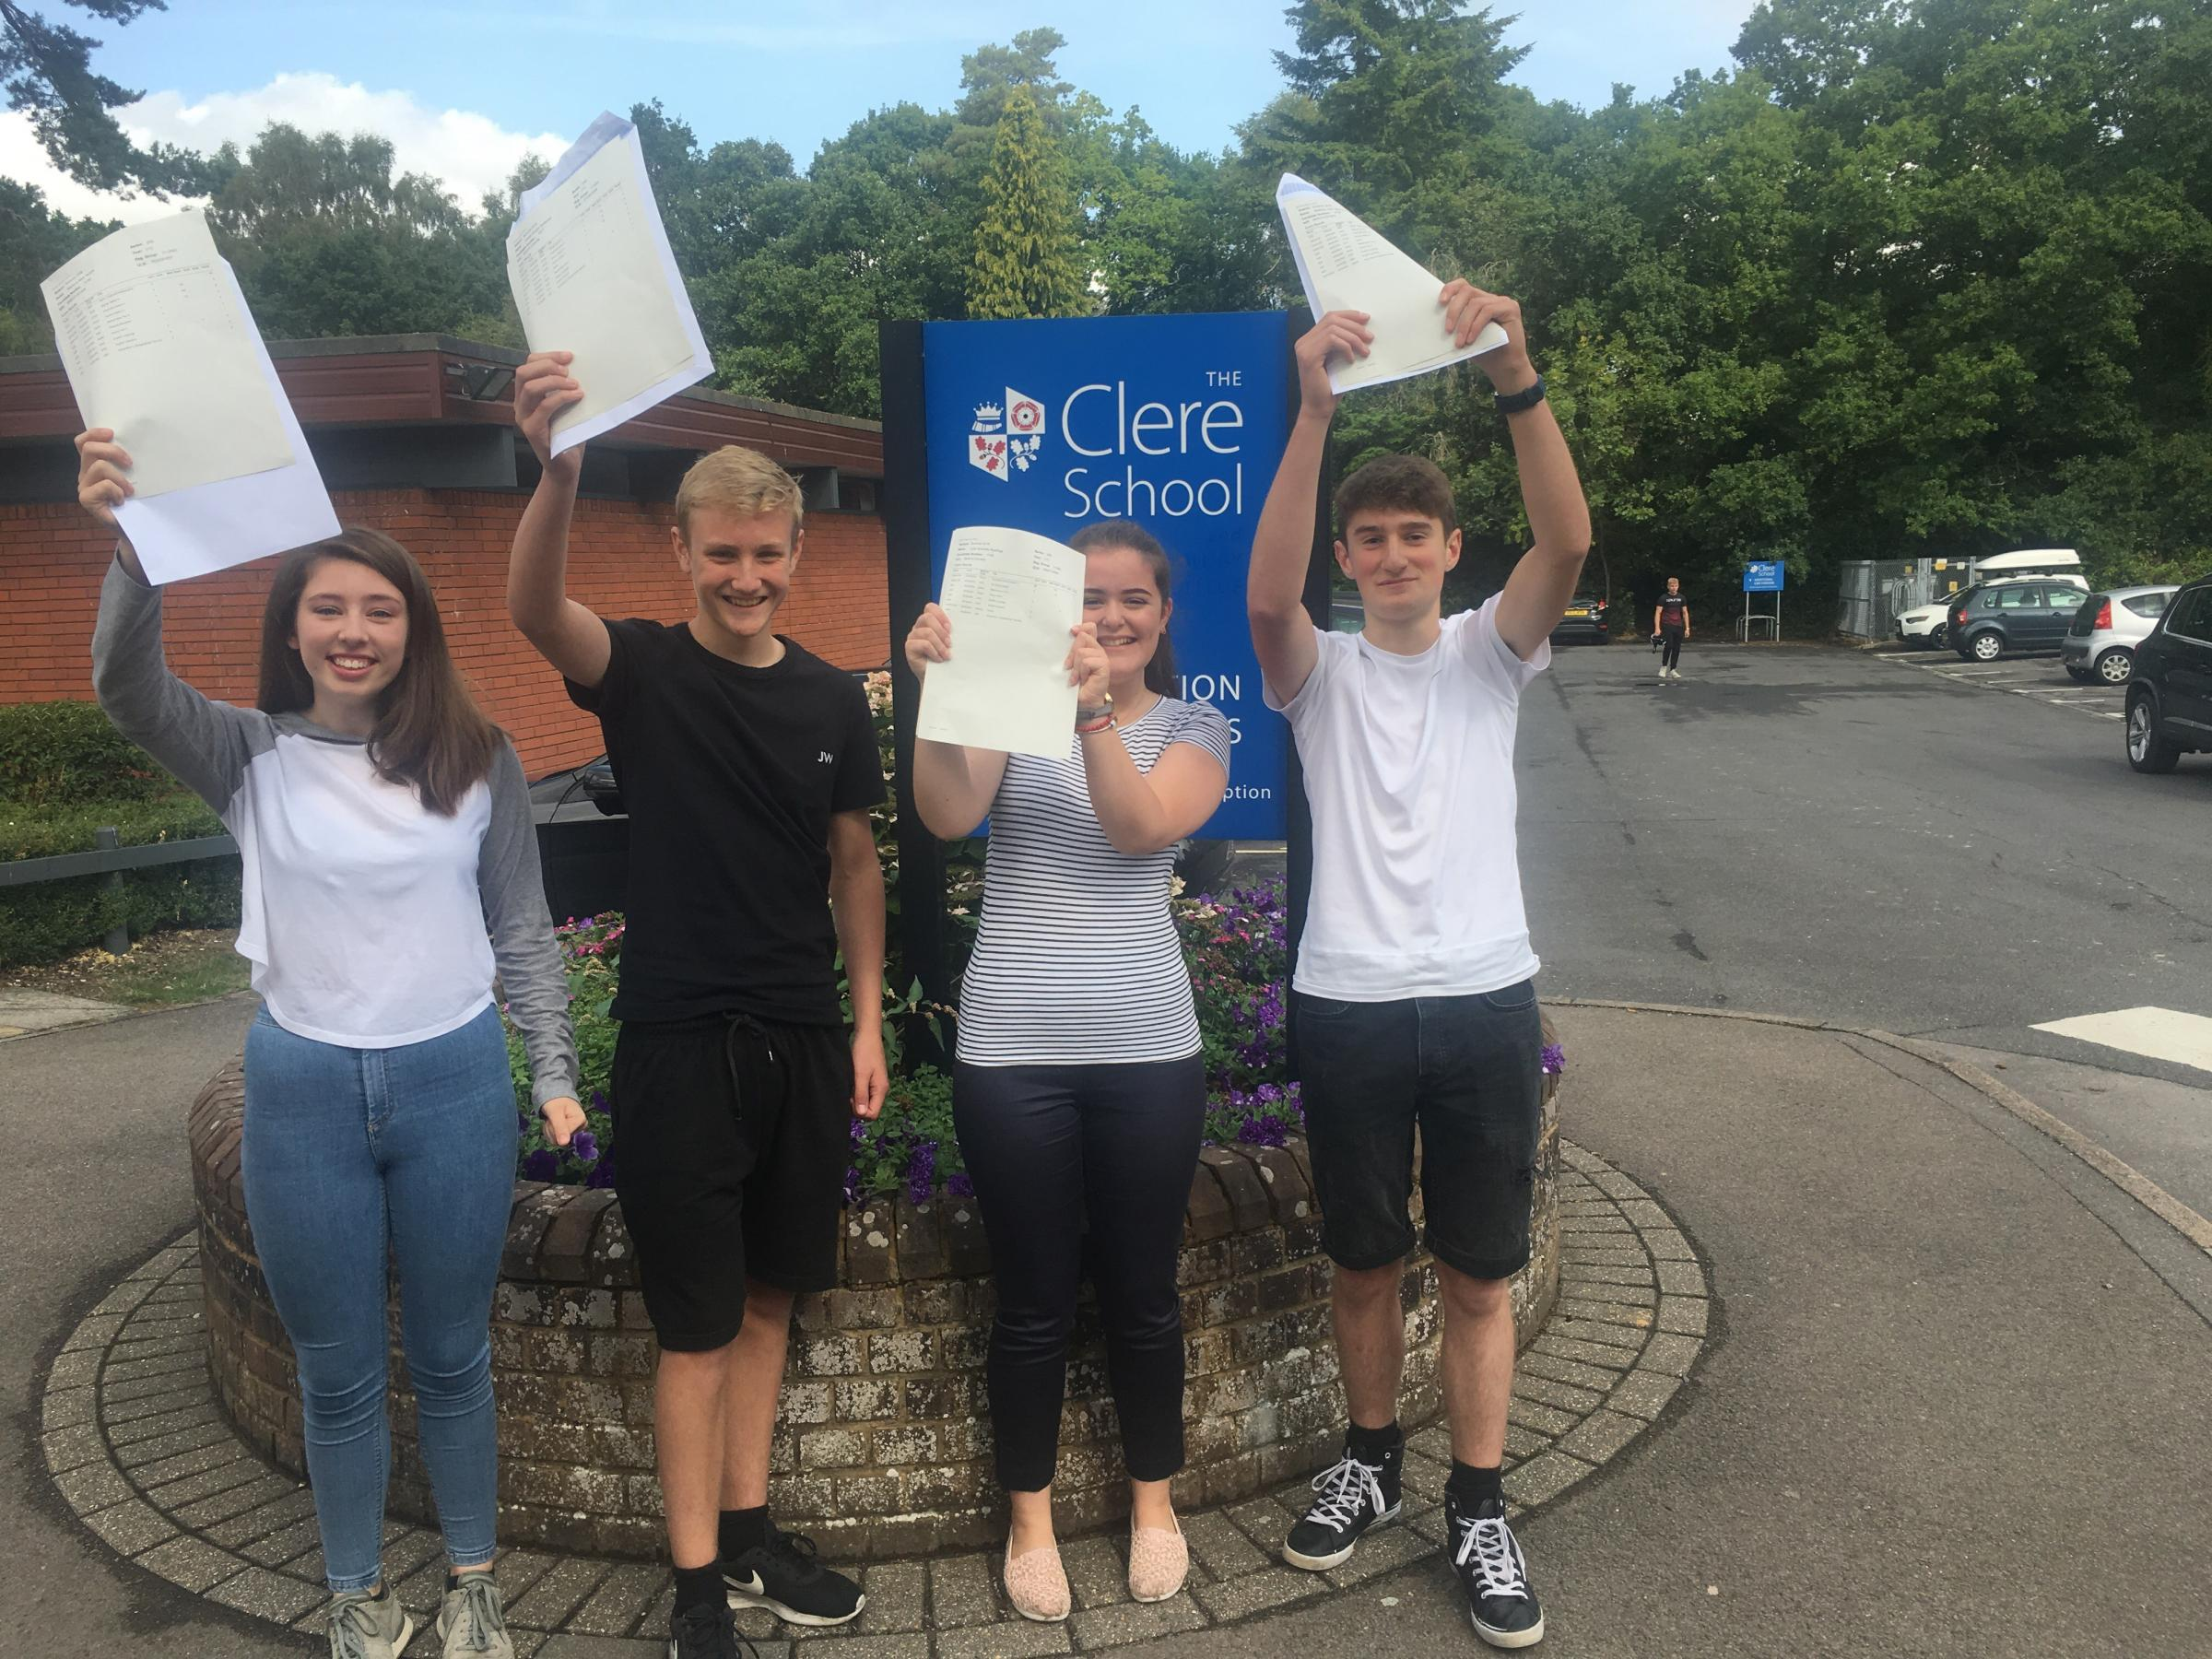 Students celebrate their results at The Clere School